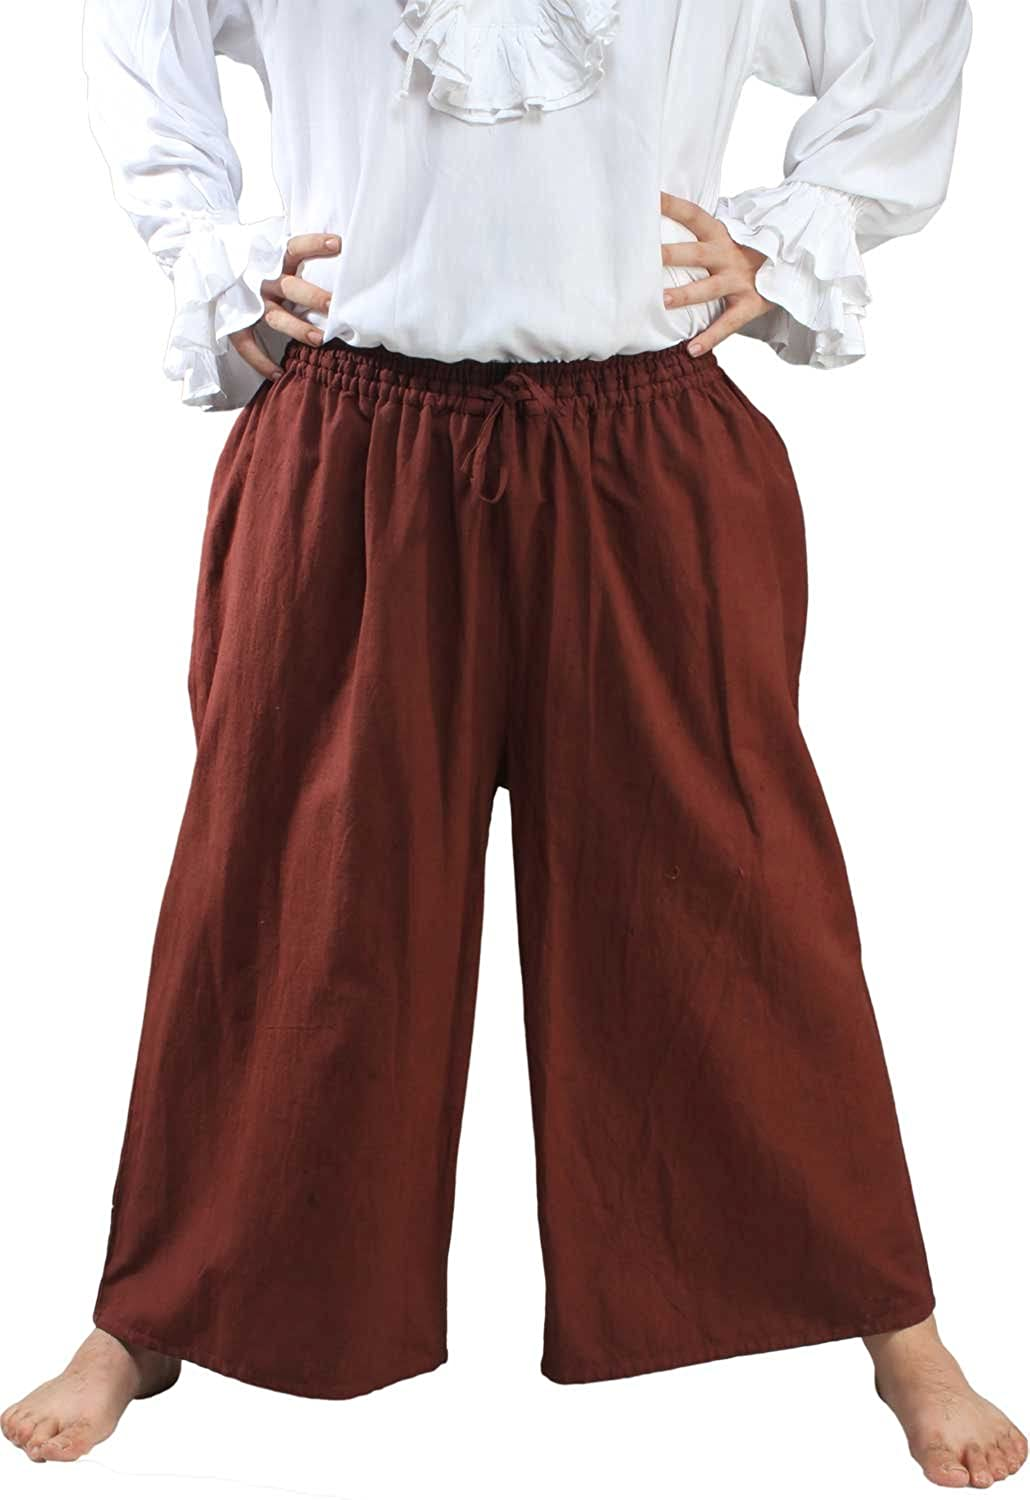 Deluxe Adult Costumes - Men's chocolate wide leg draw string pirate seamen slop pants by ThePirateDressing